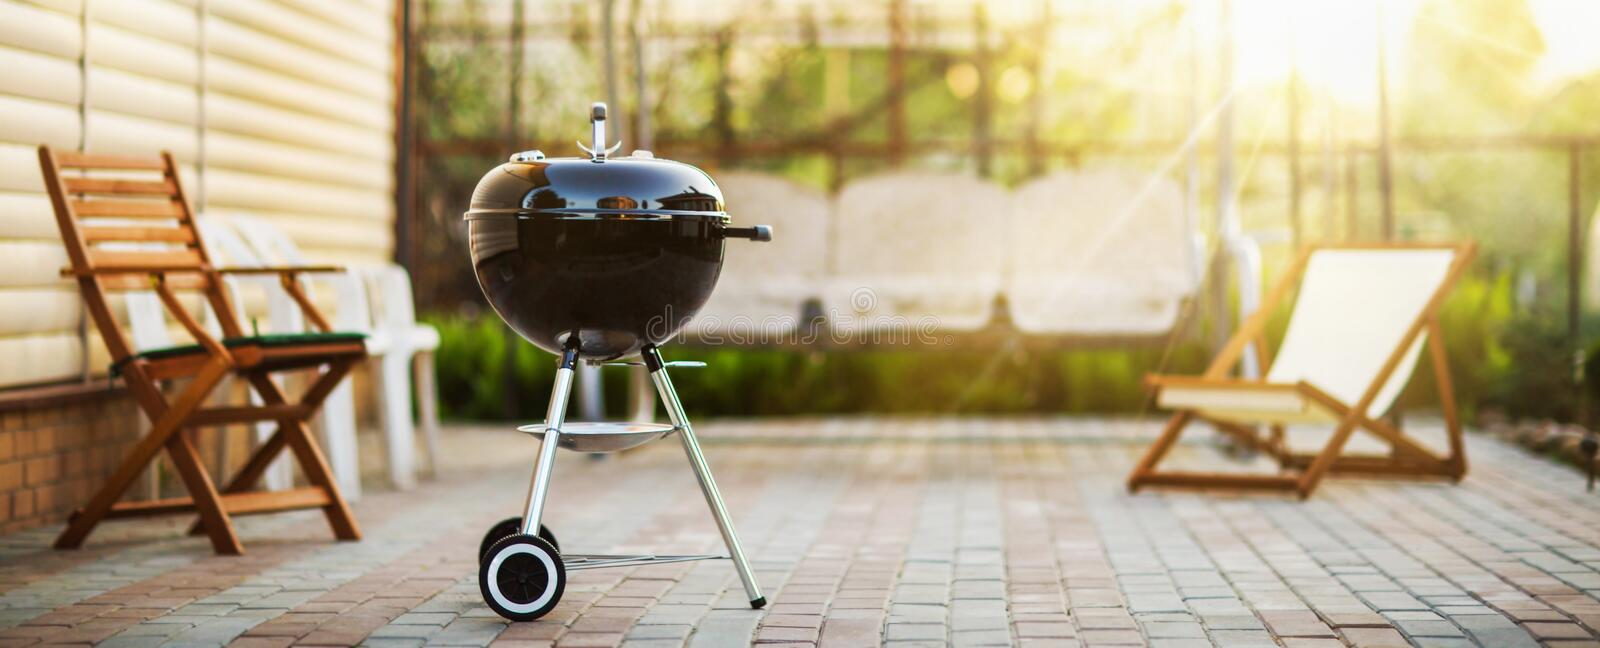 Griglia del barbecue all'aperto fotografie stock